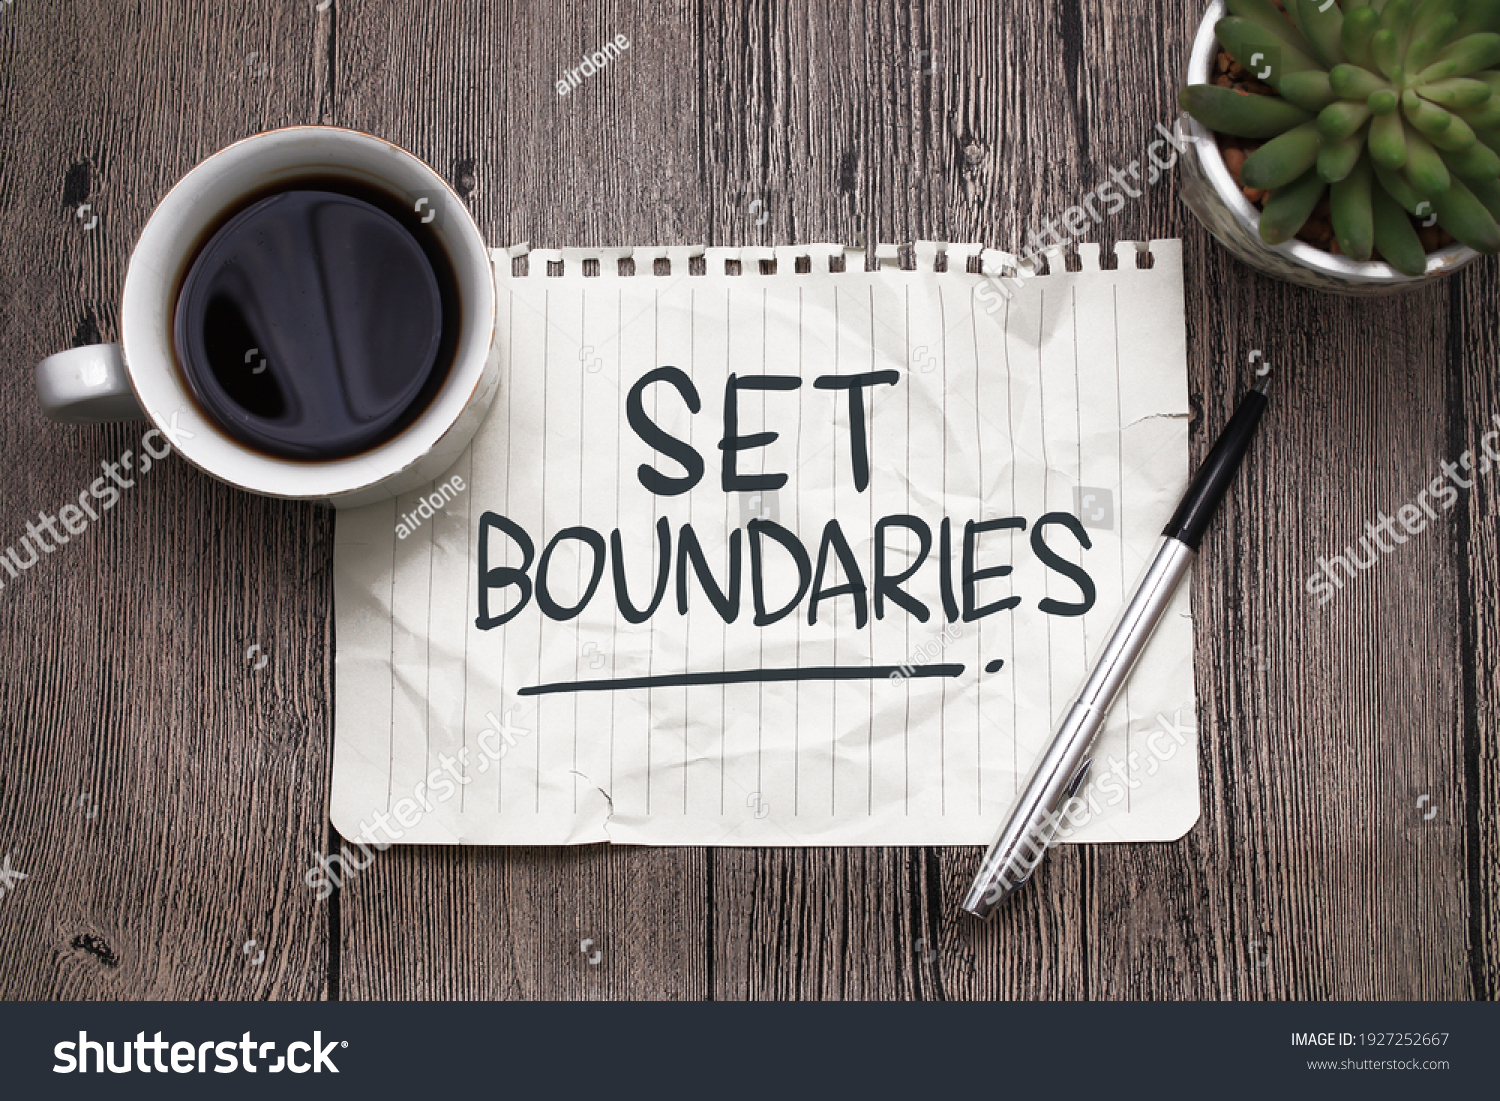 Set boundaries, text words typography written on paper against wooden background, life and business motivational inspirational concept #1927252667